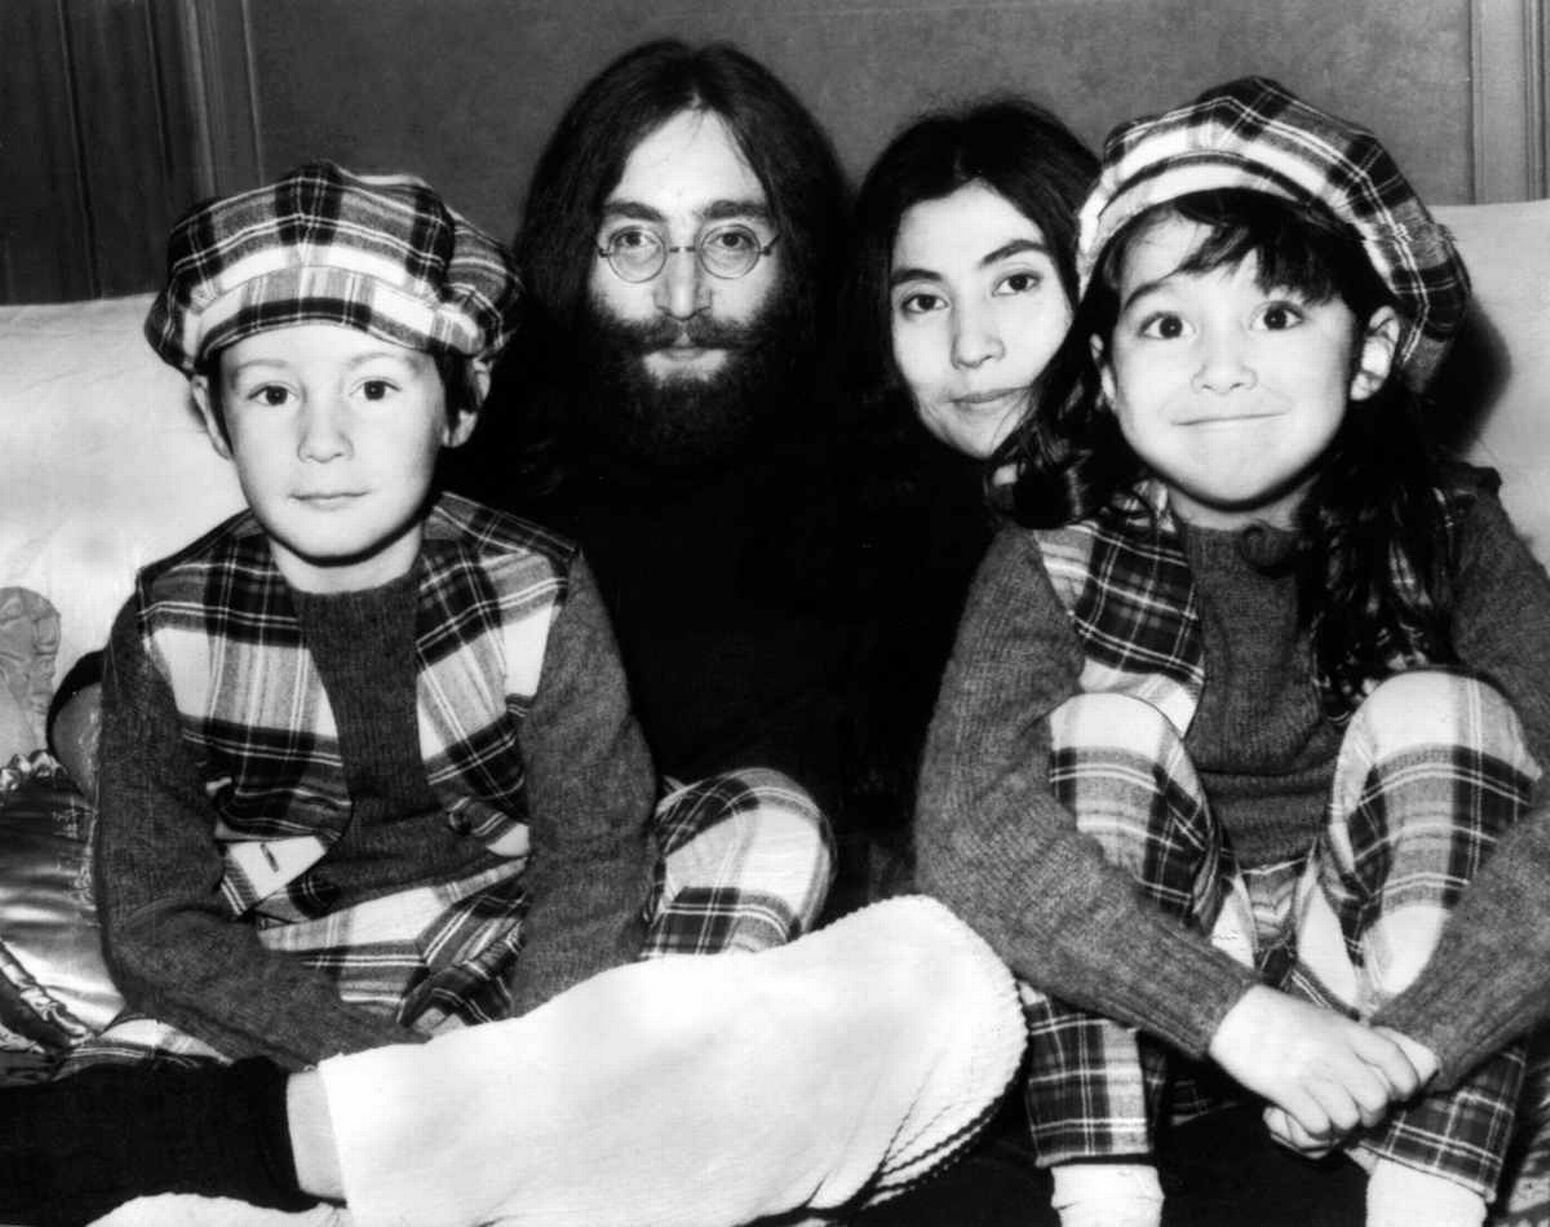 John Lennon And Yoko Ono With Julian And Kyoko John Lennon And Yoko Lennon And Mccartney John Lennon Yoko Ono